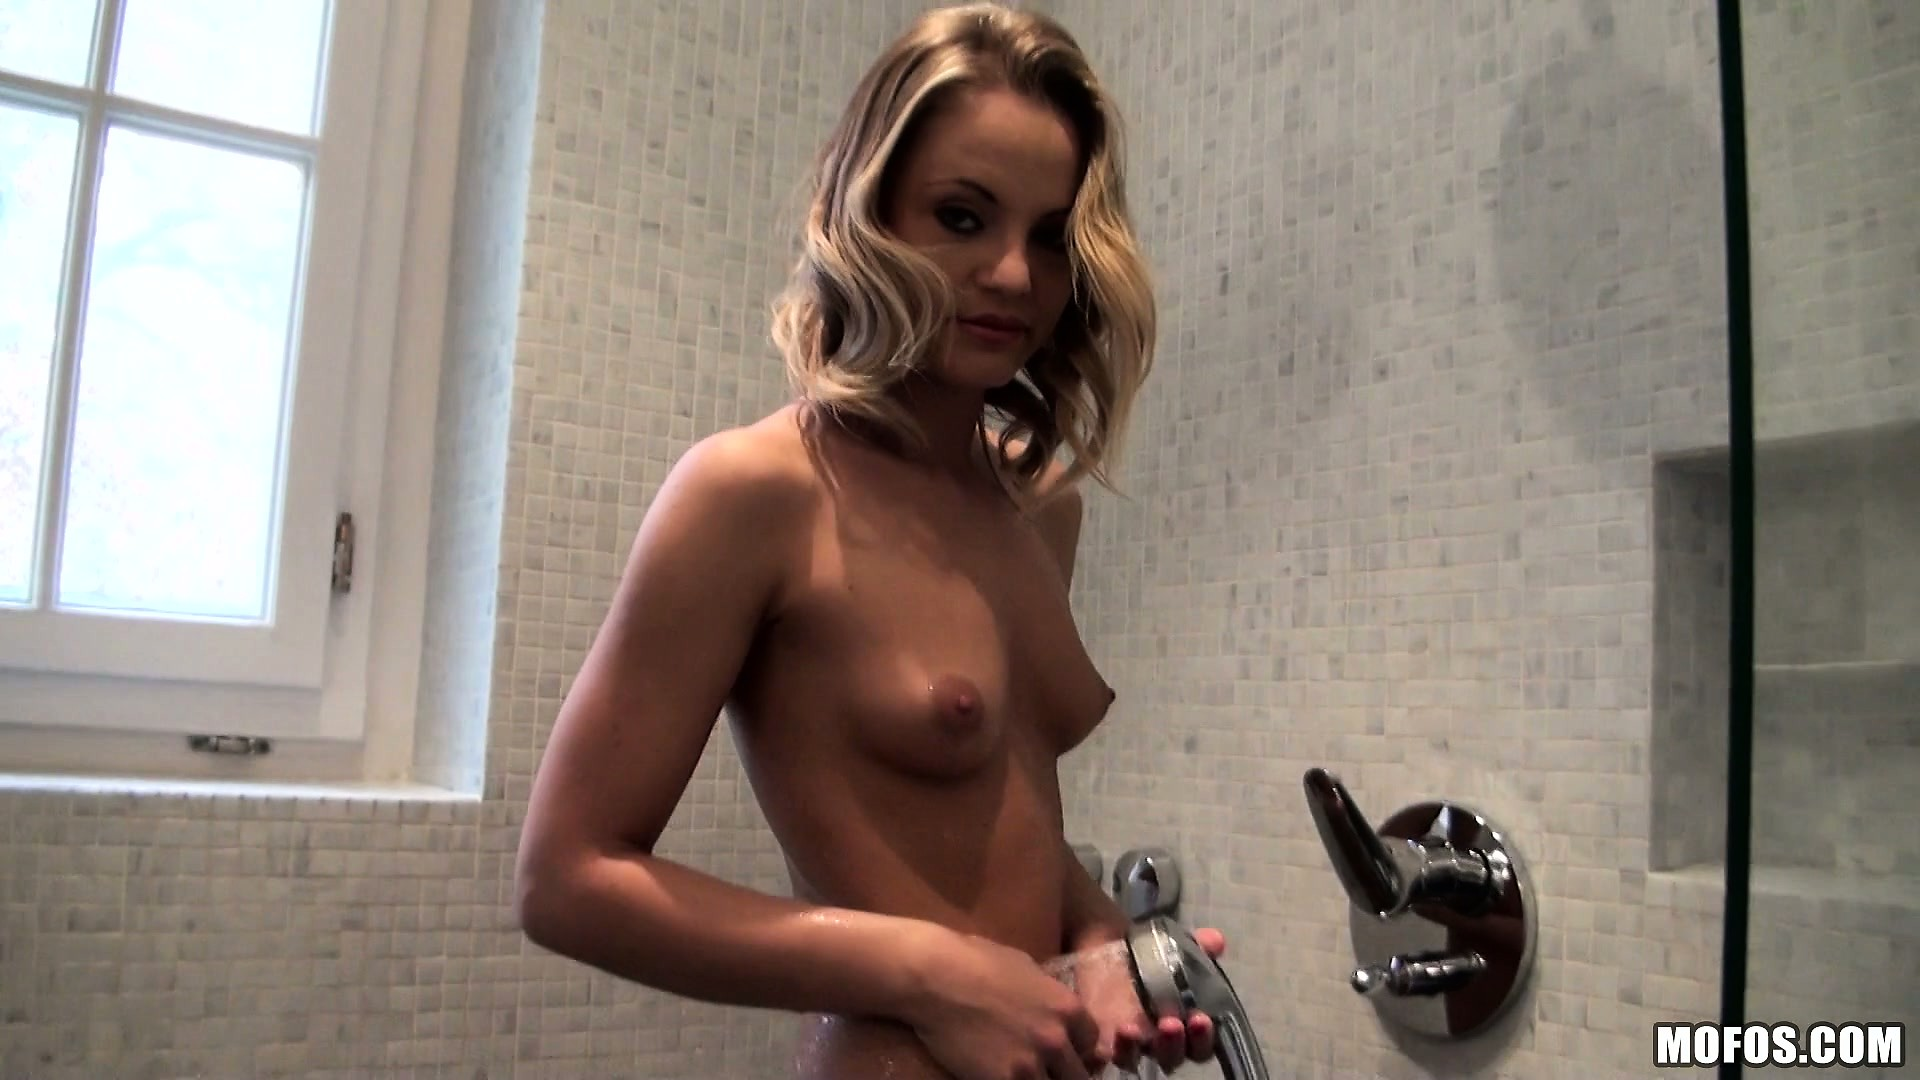 Porn Tube of Marvelous Blonde Displays Her Perfect Ass And Perky Tits In The Shower